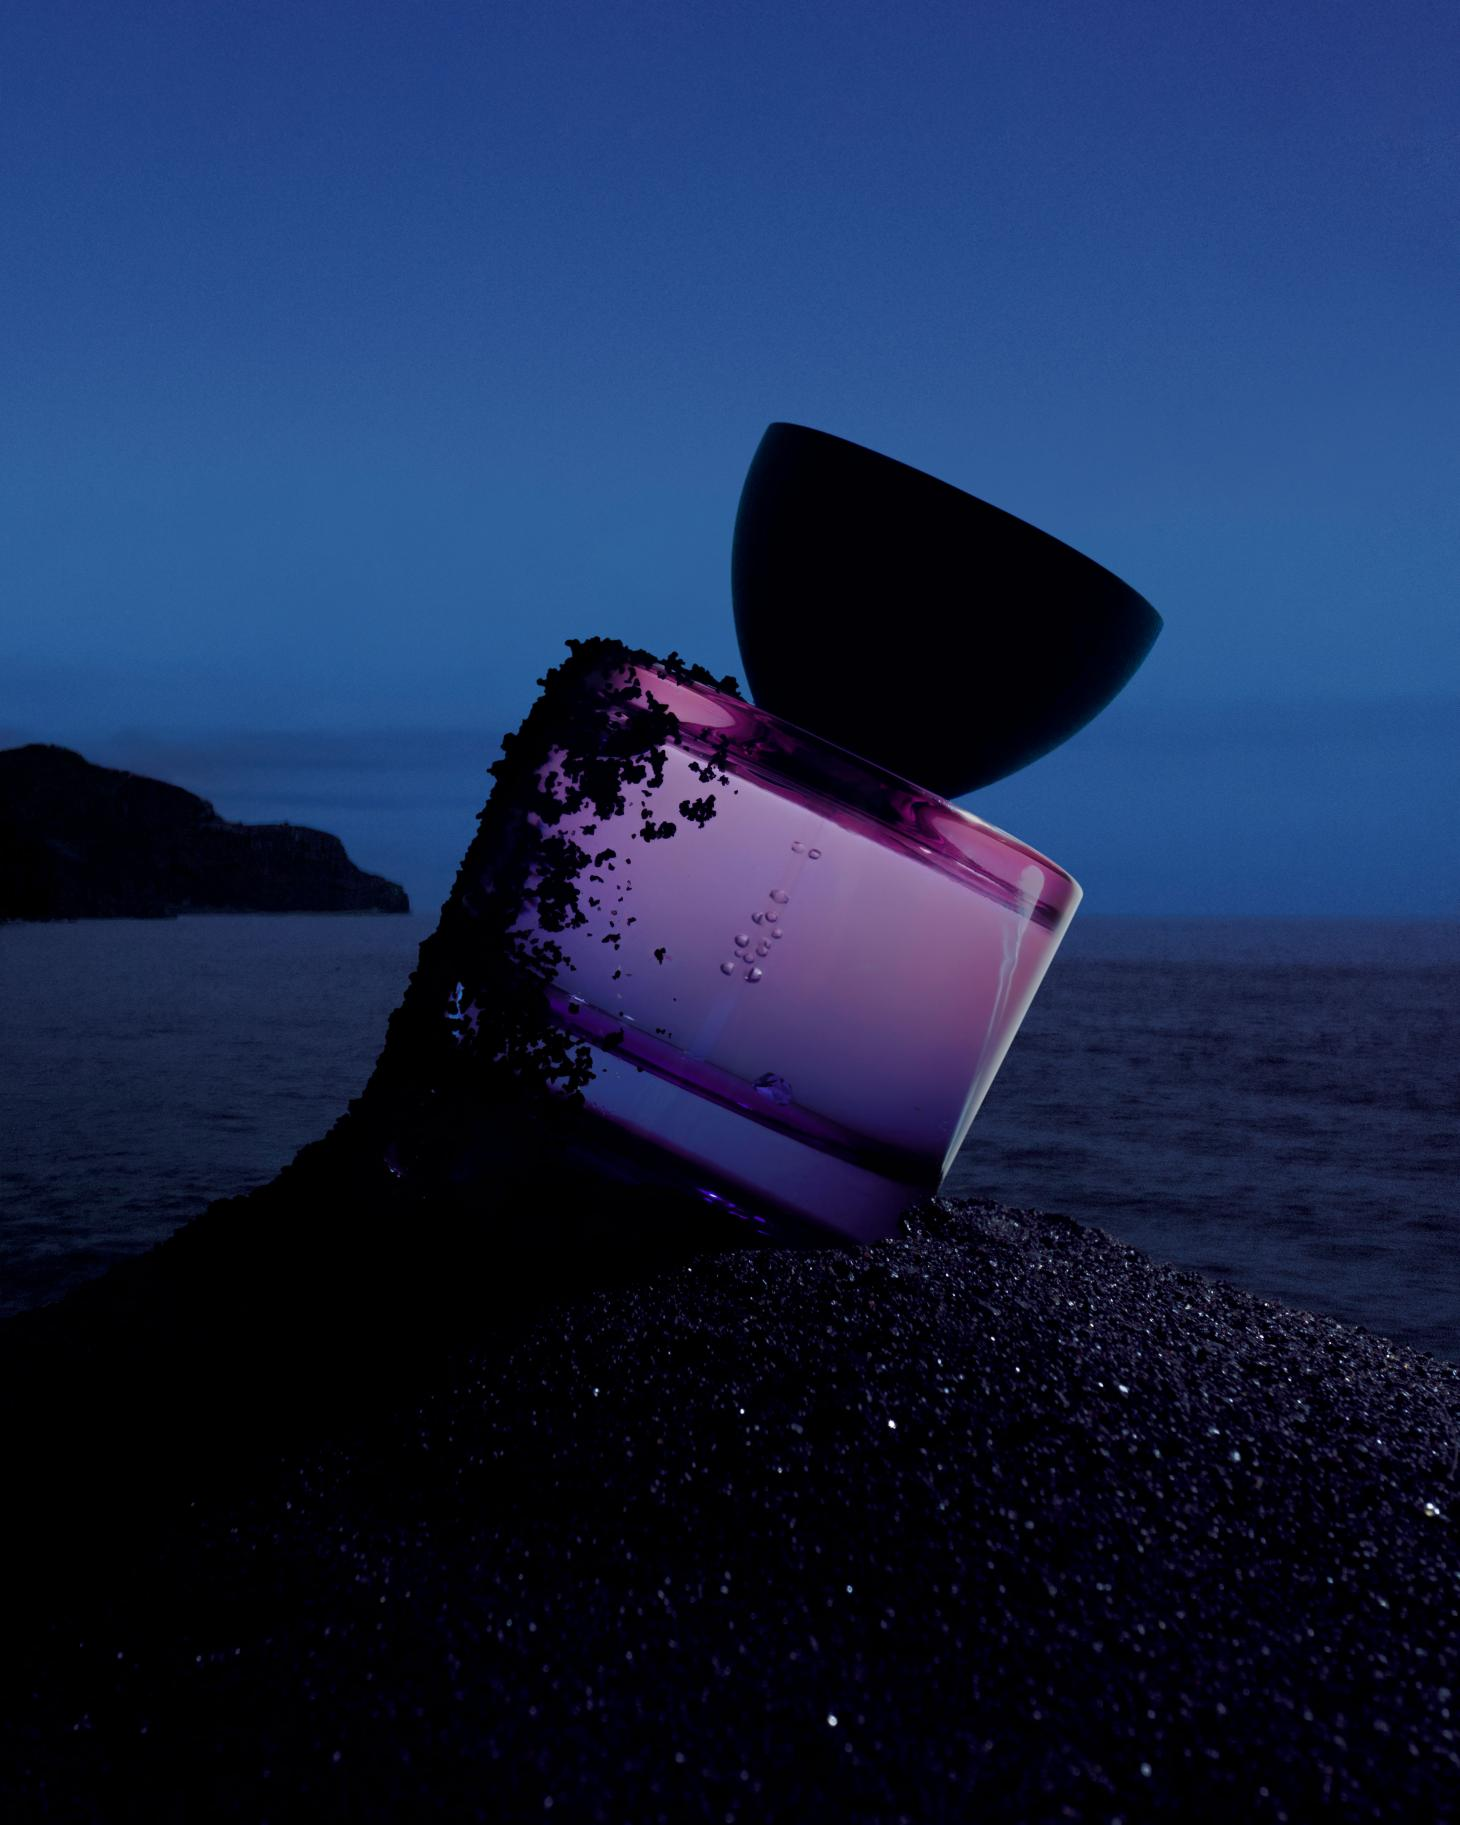 Photographby Igor Pjoort fromVyrao'sWitchy Woo campaignshowing purple bottle in black sand